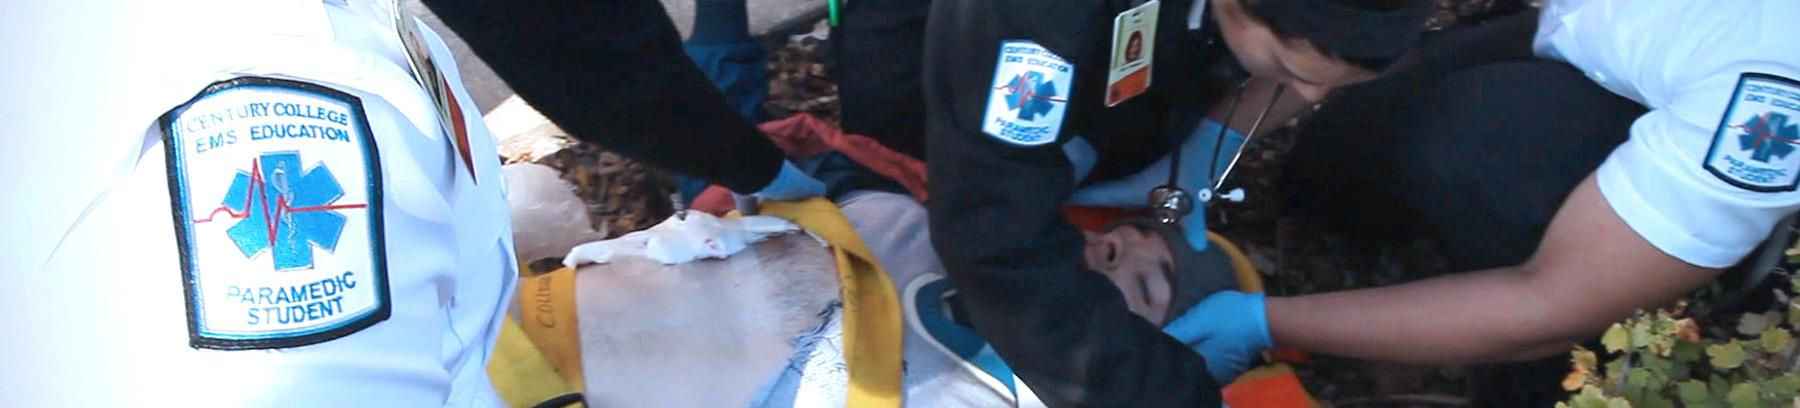 EMT students working on a student laying on a gurney.